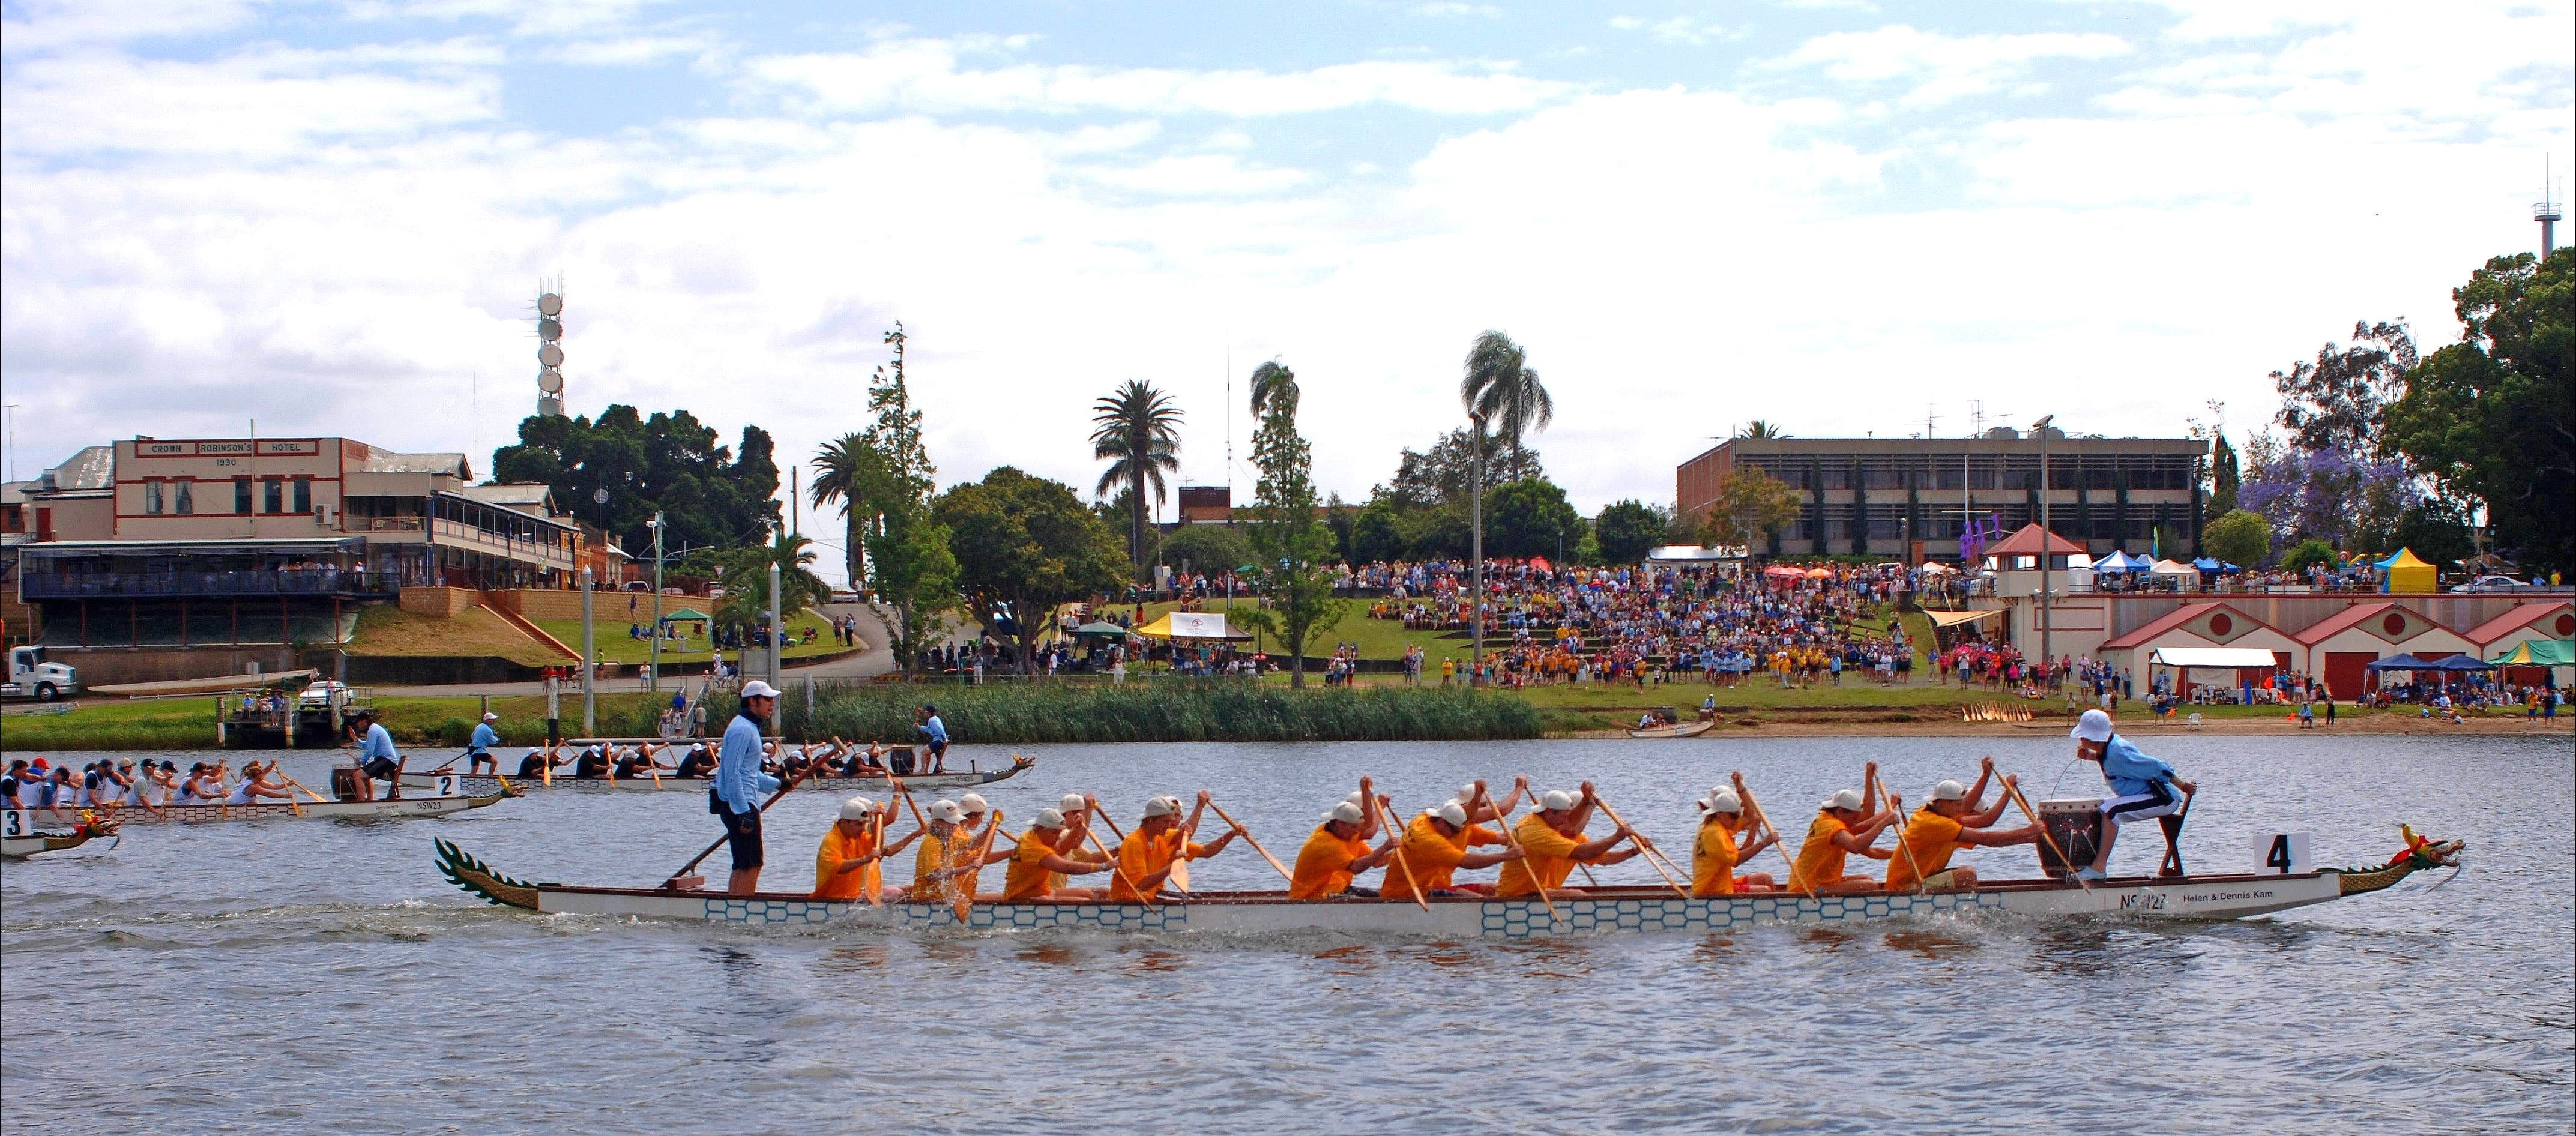 Jacaranda Dragon Boat Races - Accommodation Tasmania